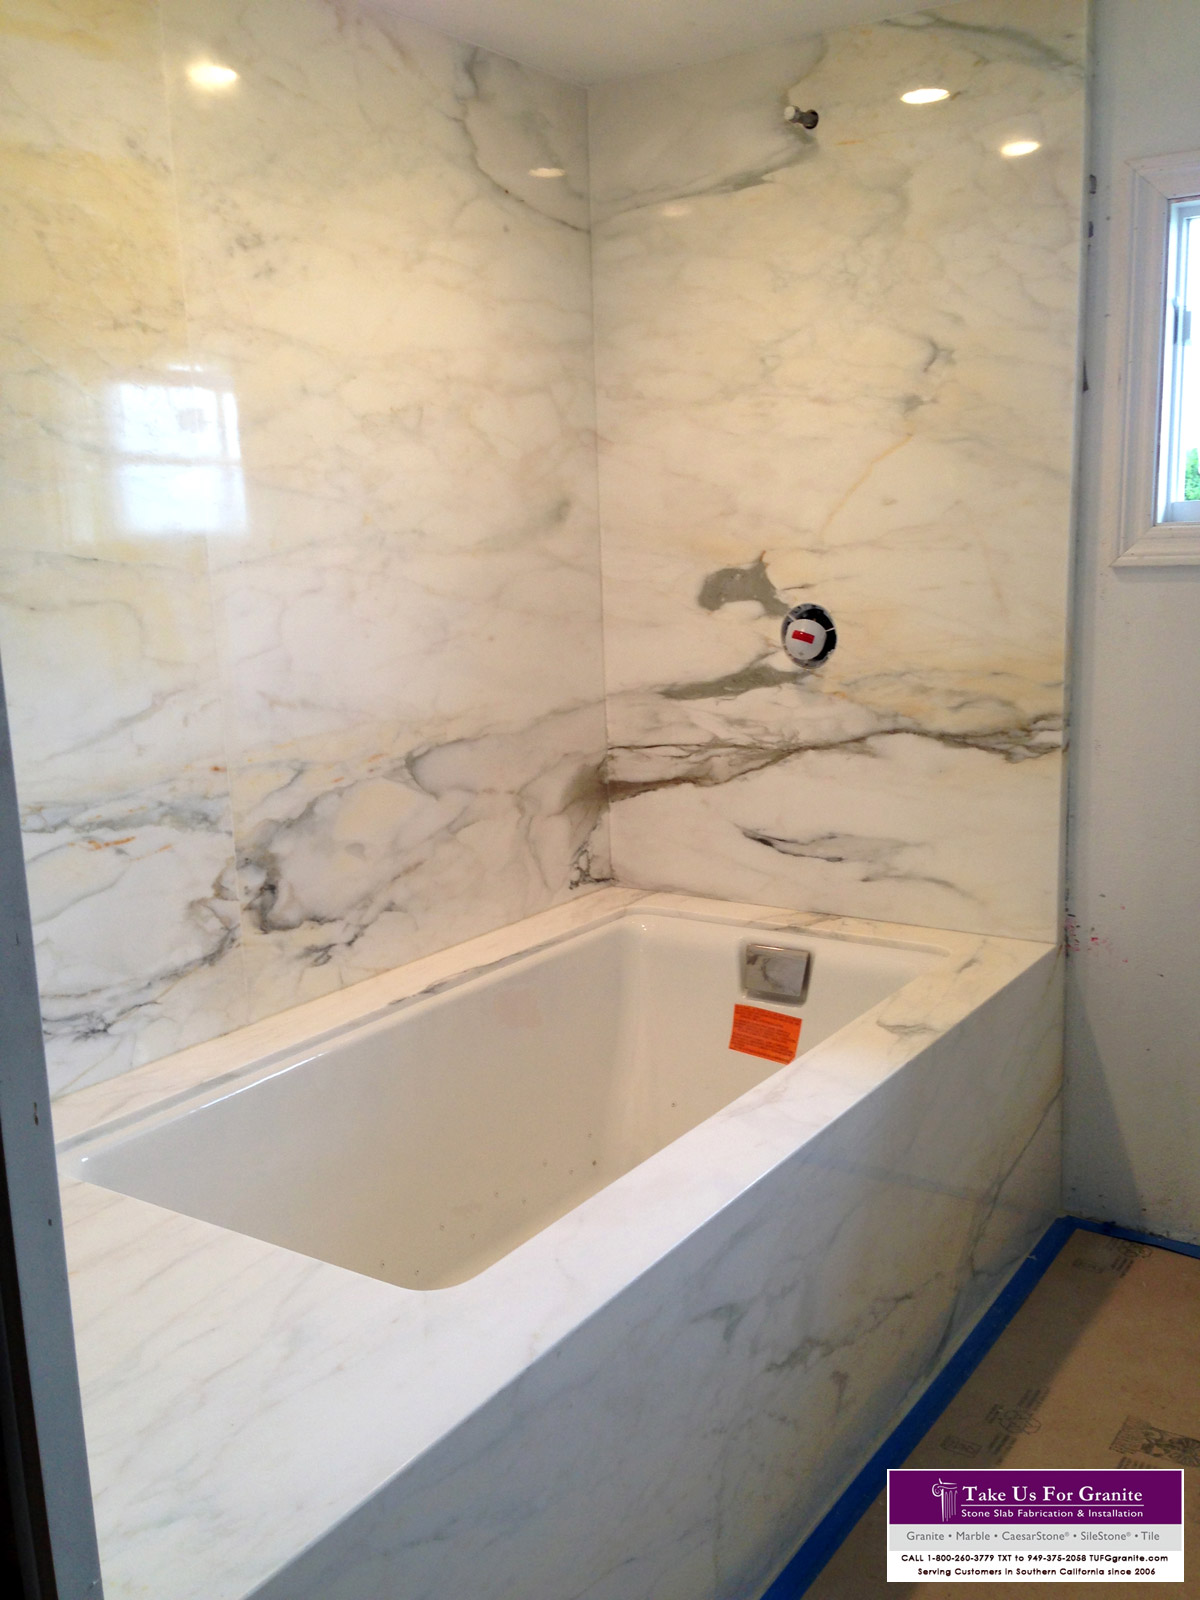 Kashmere Cream Bathtub surround